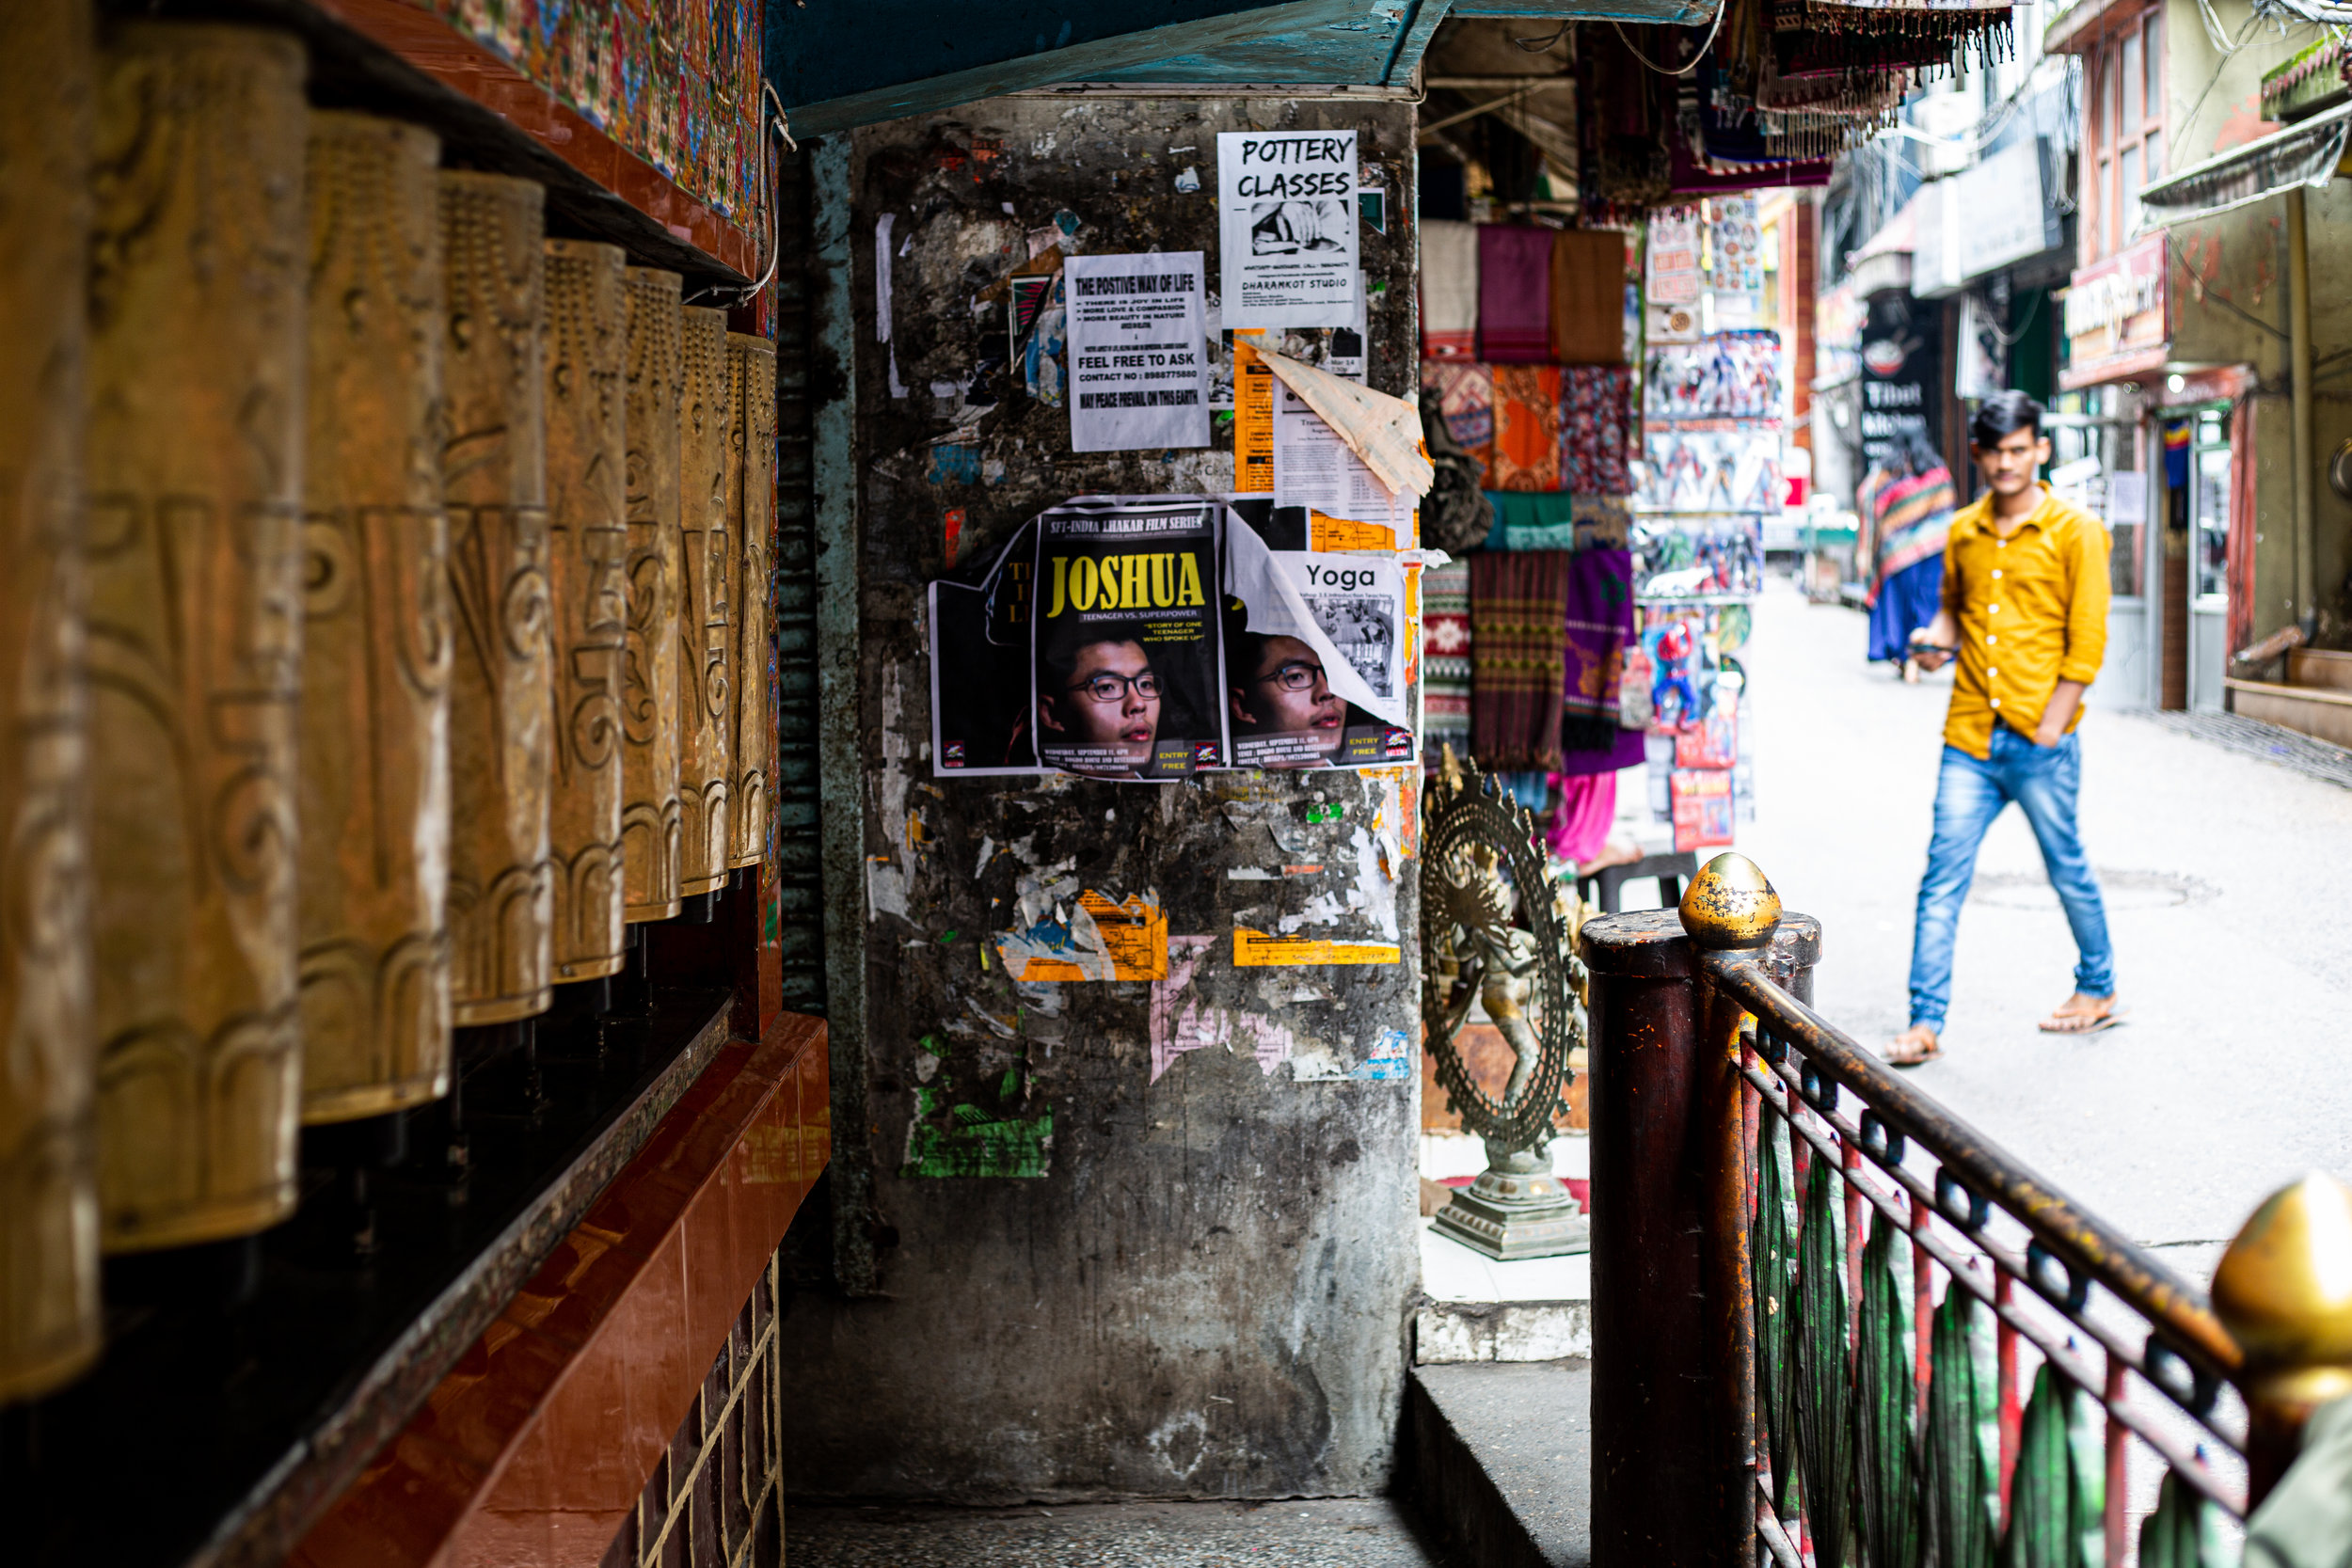 Posters of Joshua Wong, one of the leading pro-democracy leaders in Hong Kong, were pasted over many walls in the streets of Dharamshala, the largest Tibetan settlement in India. Photo by Avinash Giri.